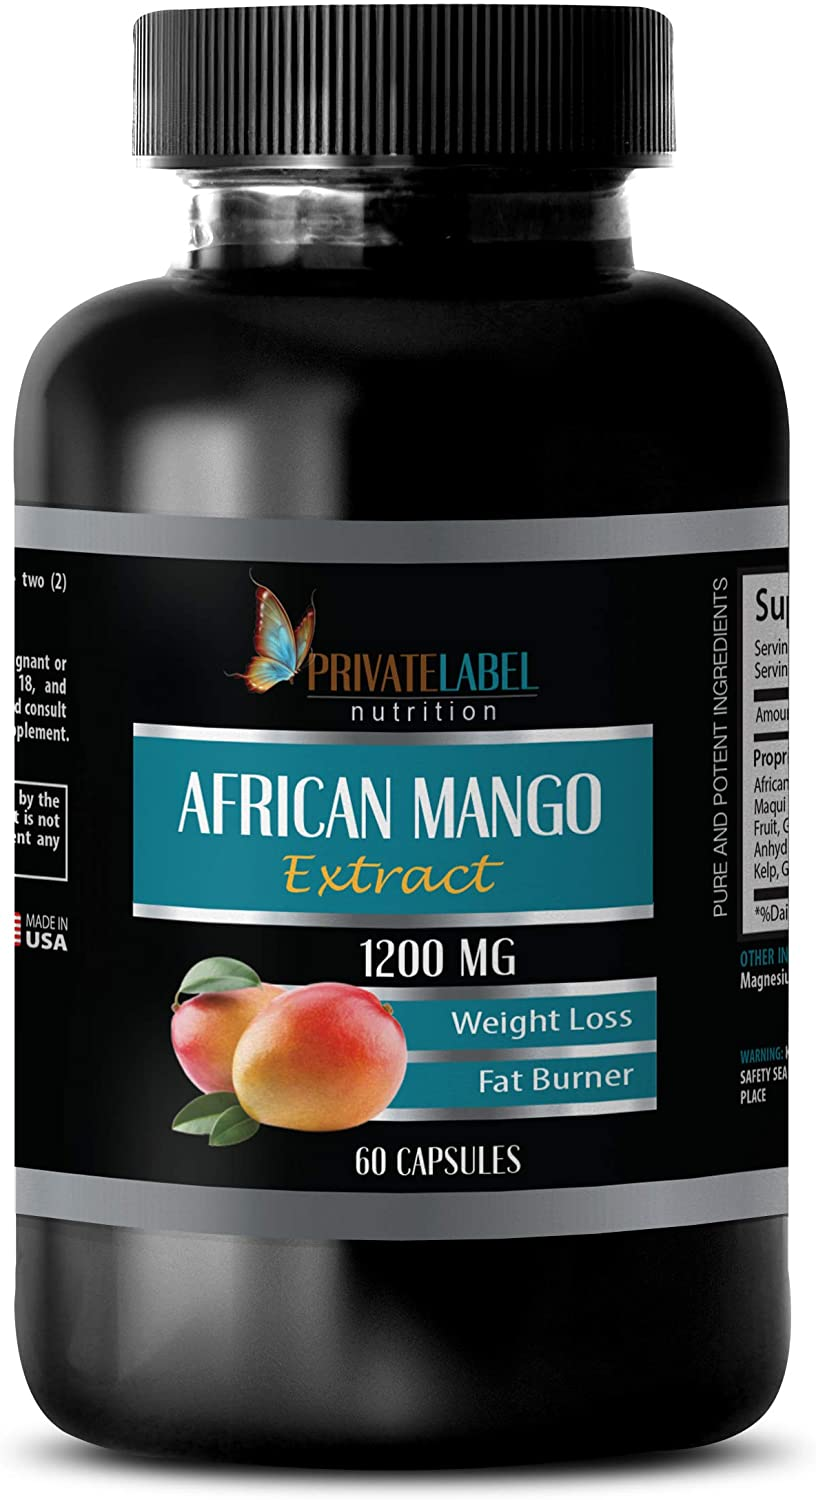 Weight Loss for Women - African Mango Extract 1200 MG - African Mango Fat Burner - 1 Bottle (60 Capsules)